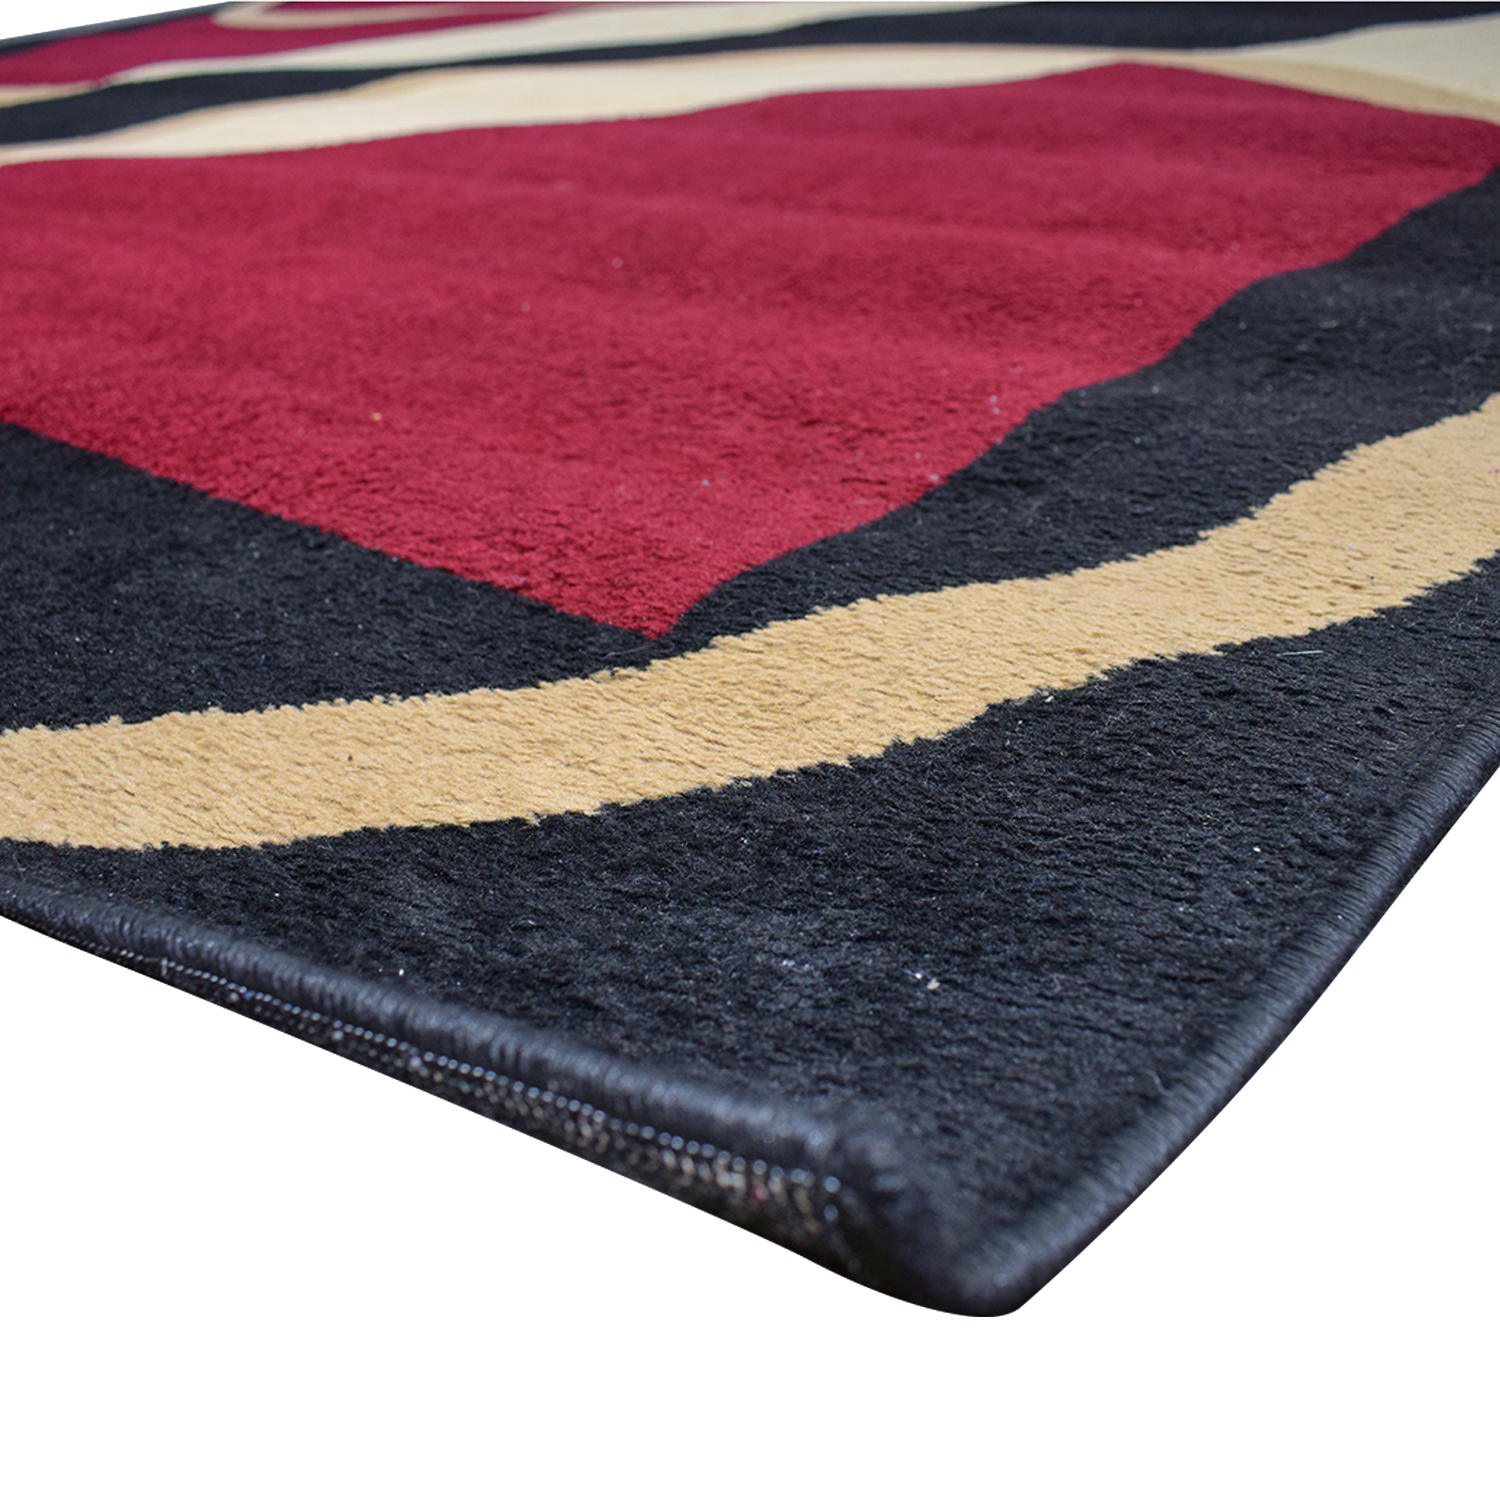 shop  Red Beige and Black Circles Pattern Carpet online